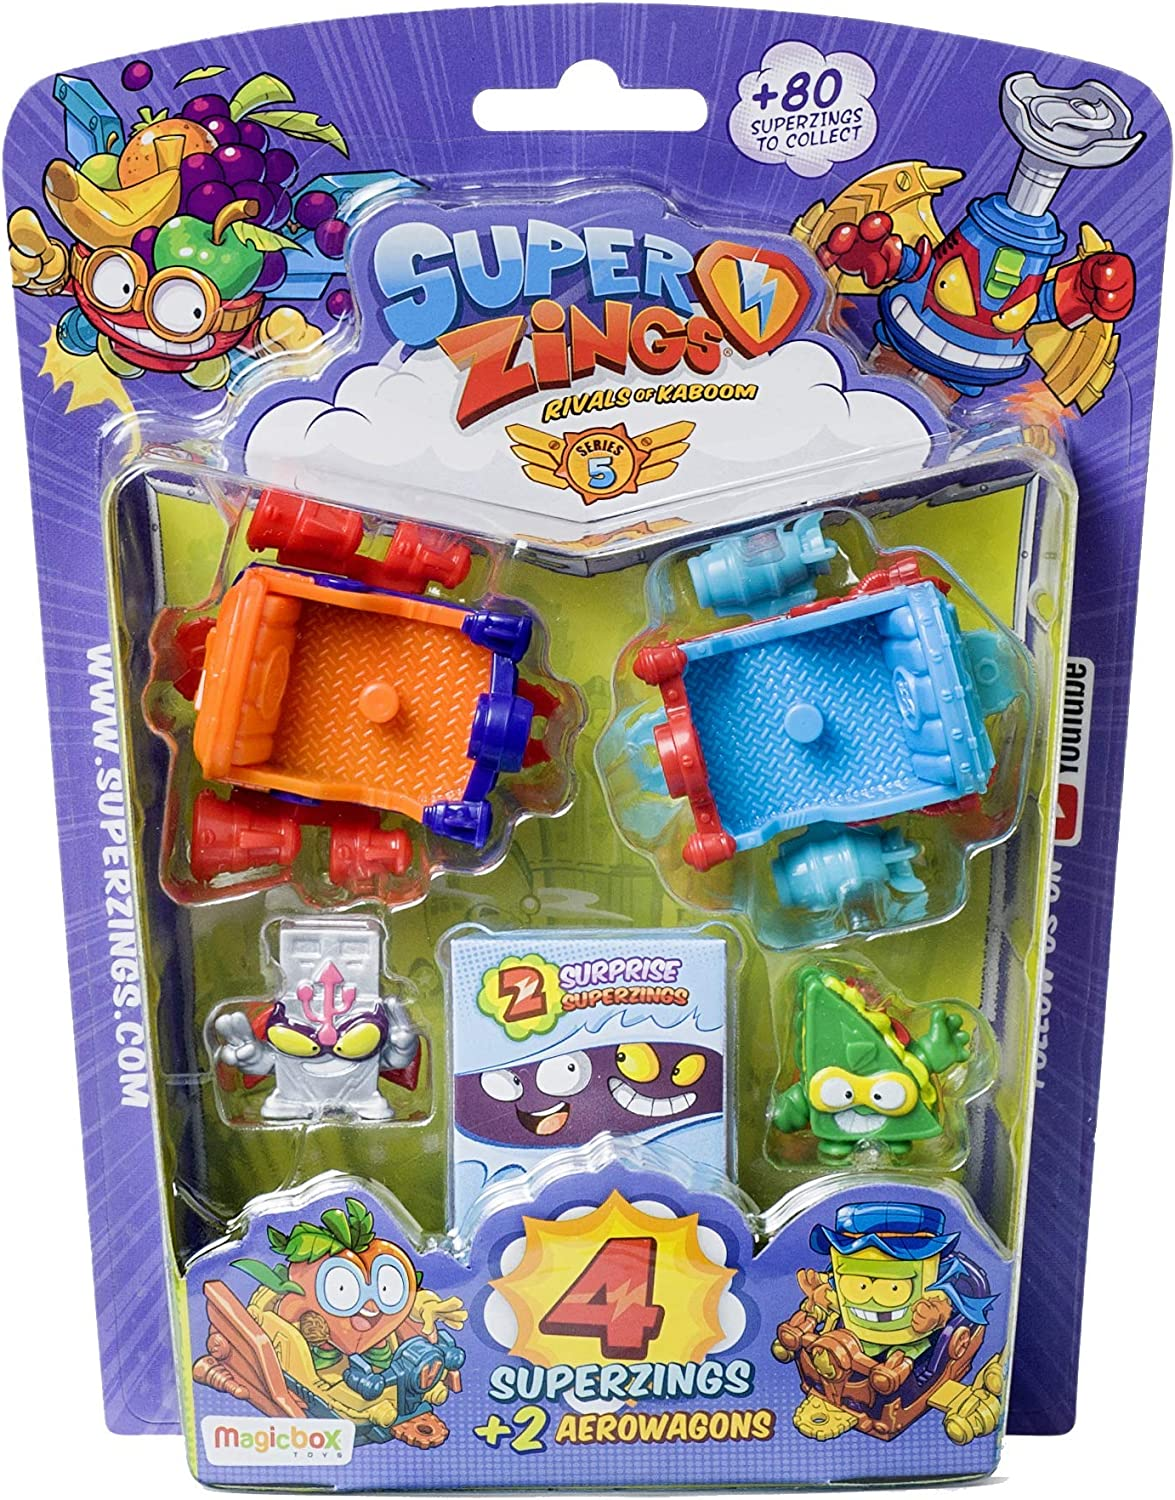 Superzings- Serie 5 - Blister AeroWagon con 4 figuras SuperZings (1 plateada) + 2 Aerowagons, colores aleatorios